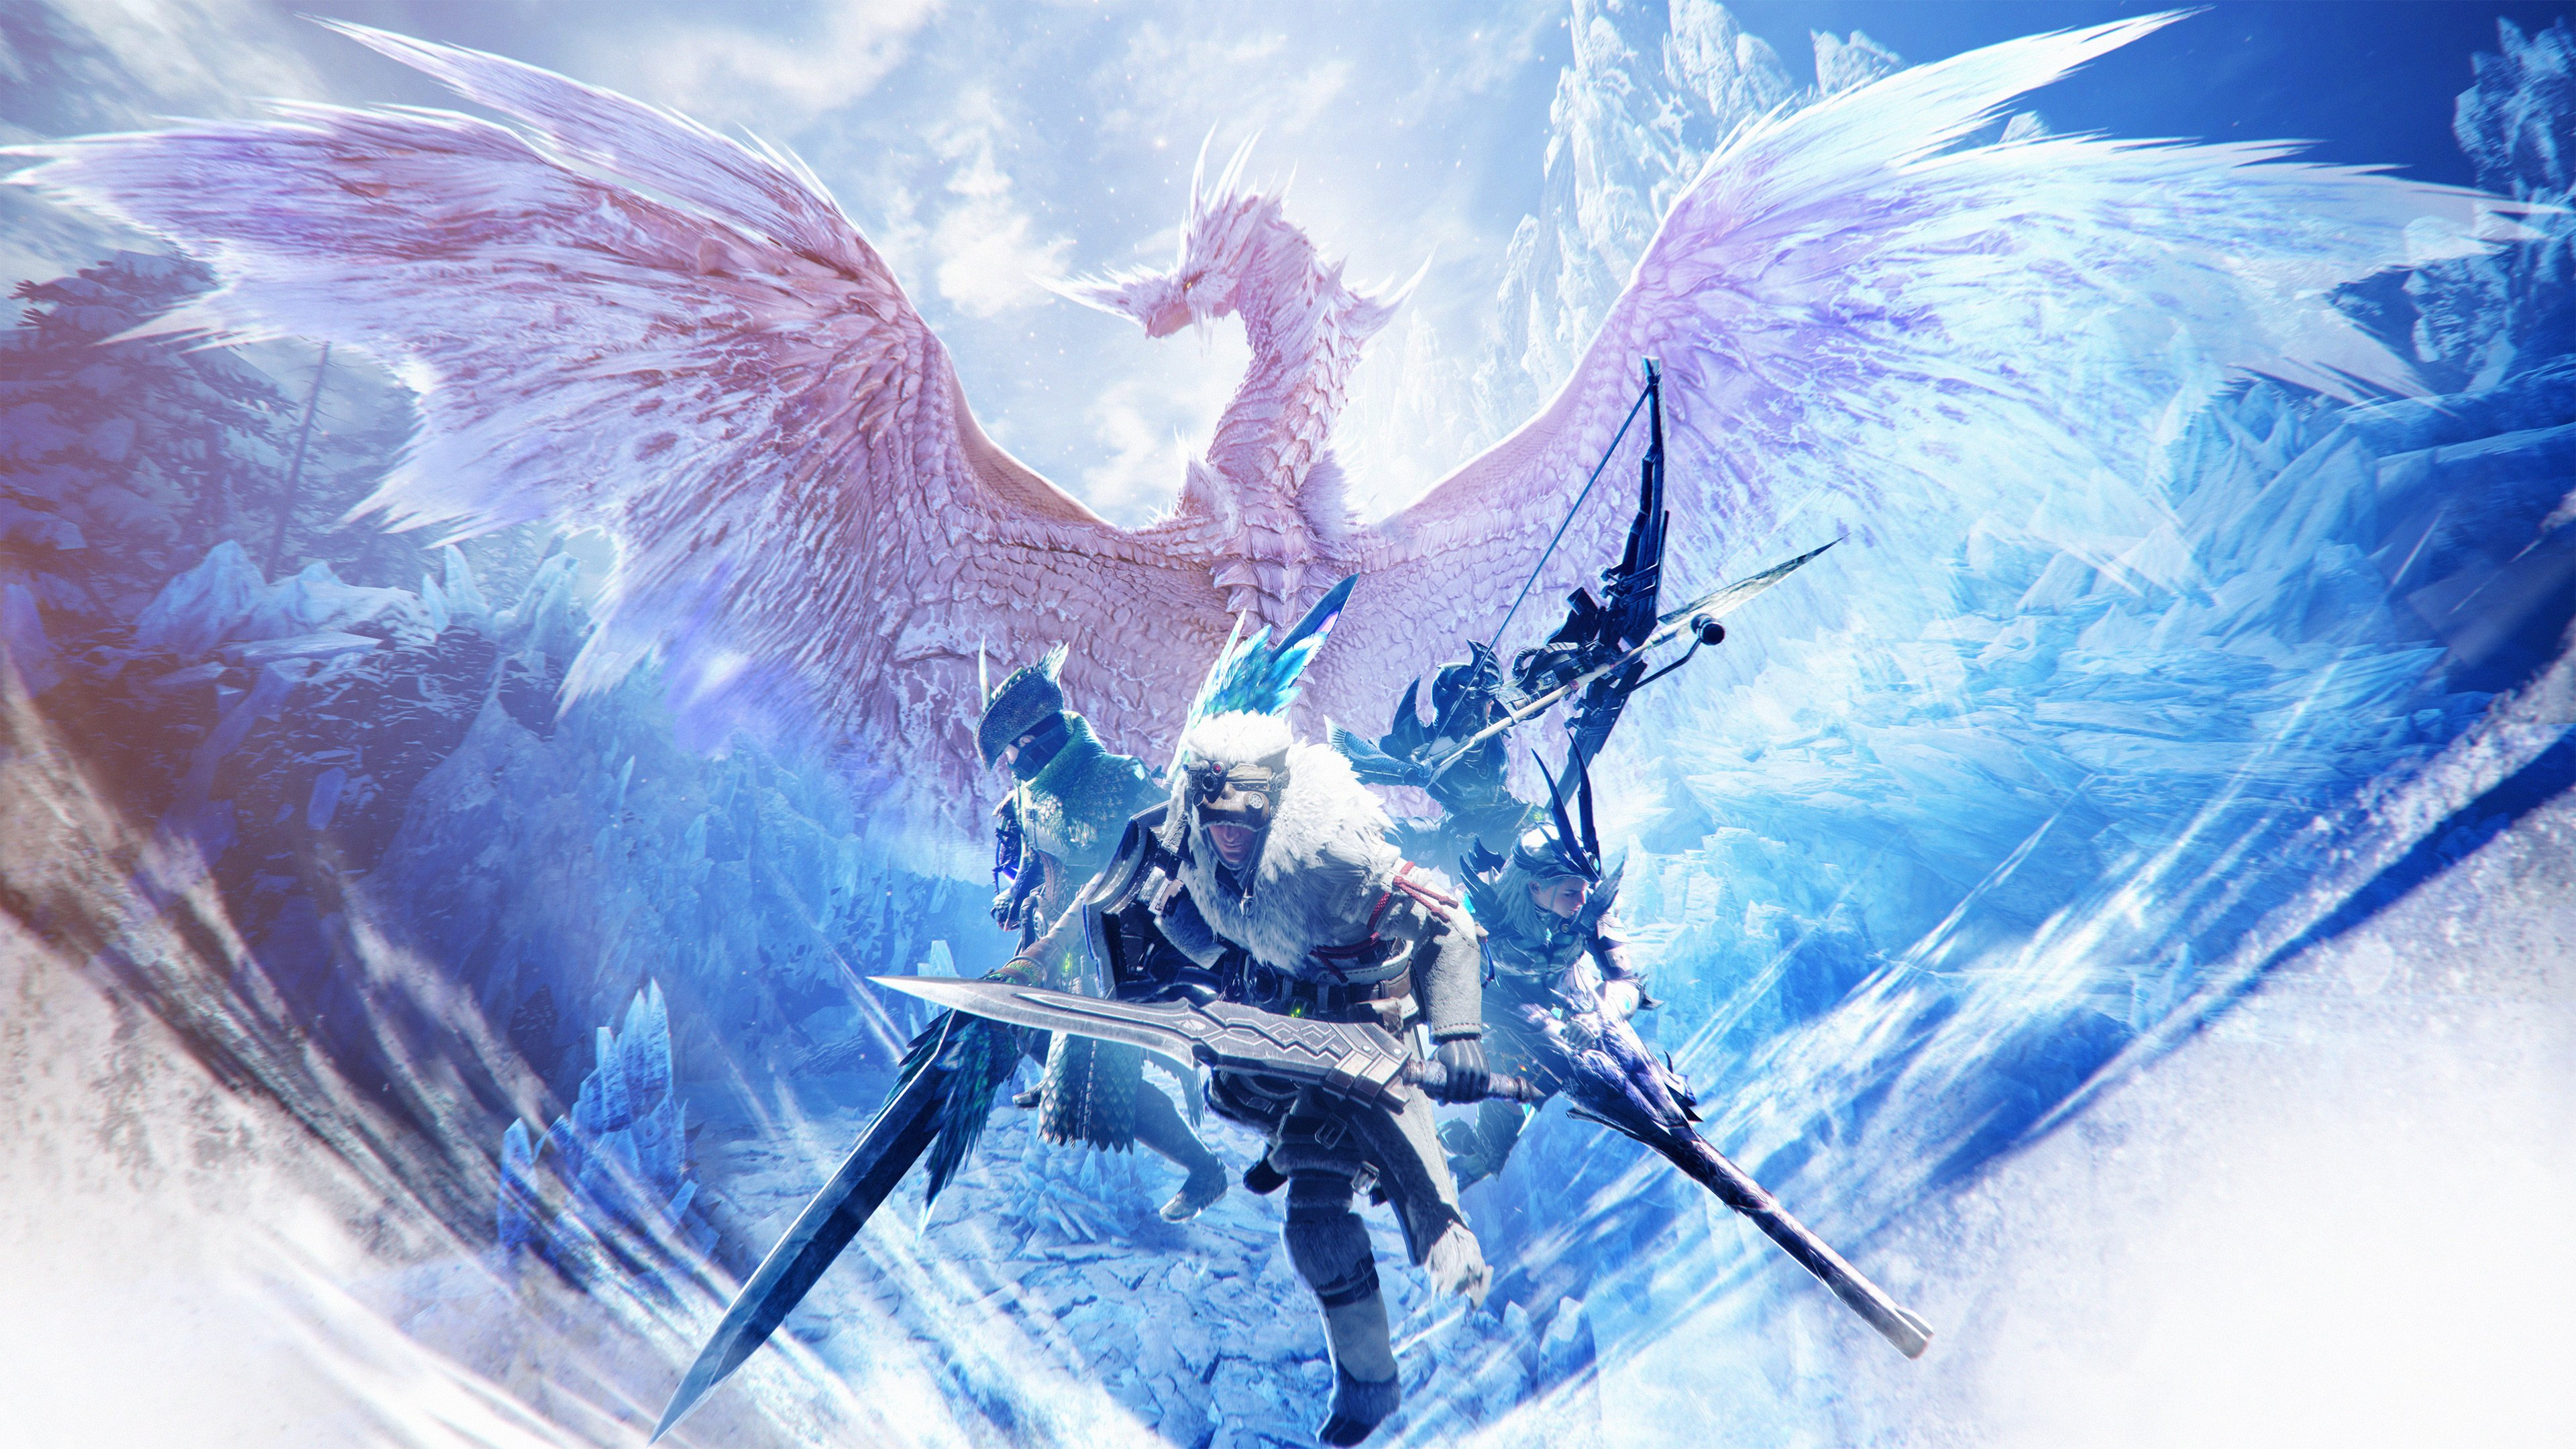 Monster Hunter World: Iceborne is now available on PS4 and Xbox One - GodisaGeek.com